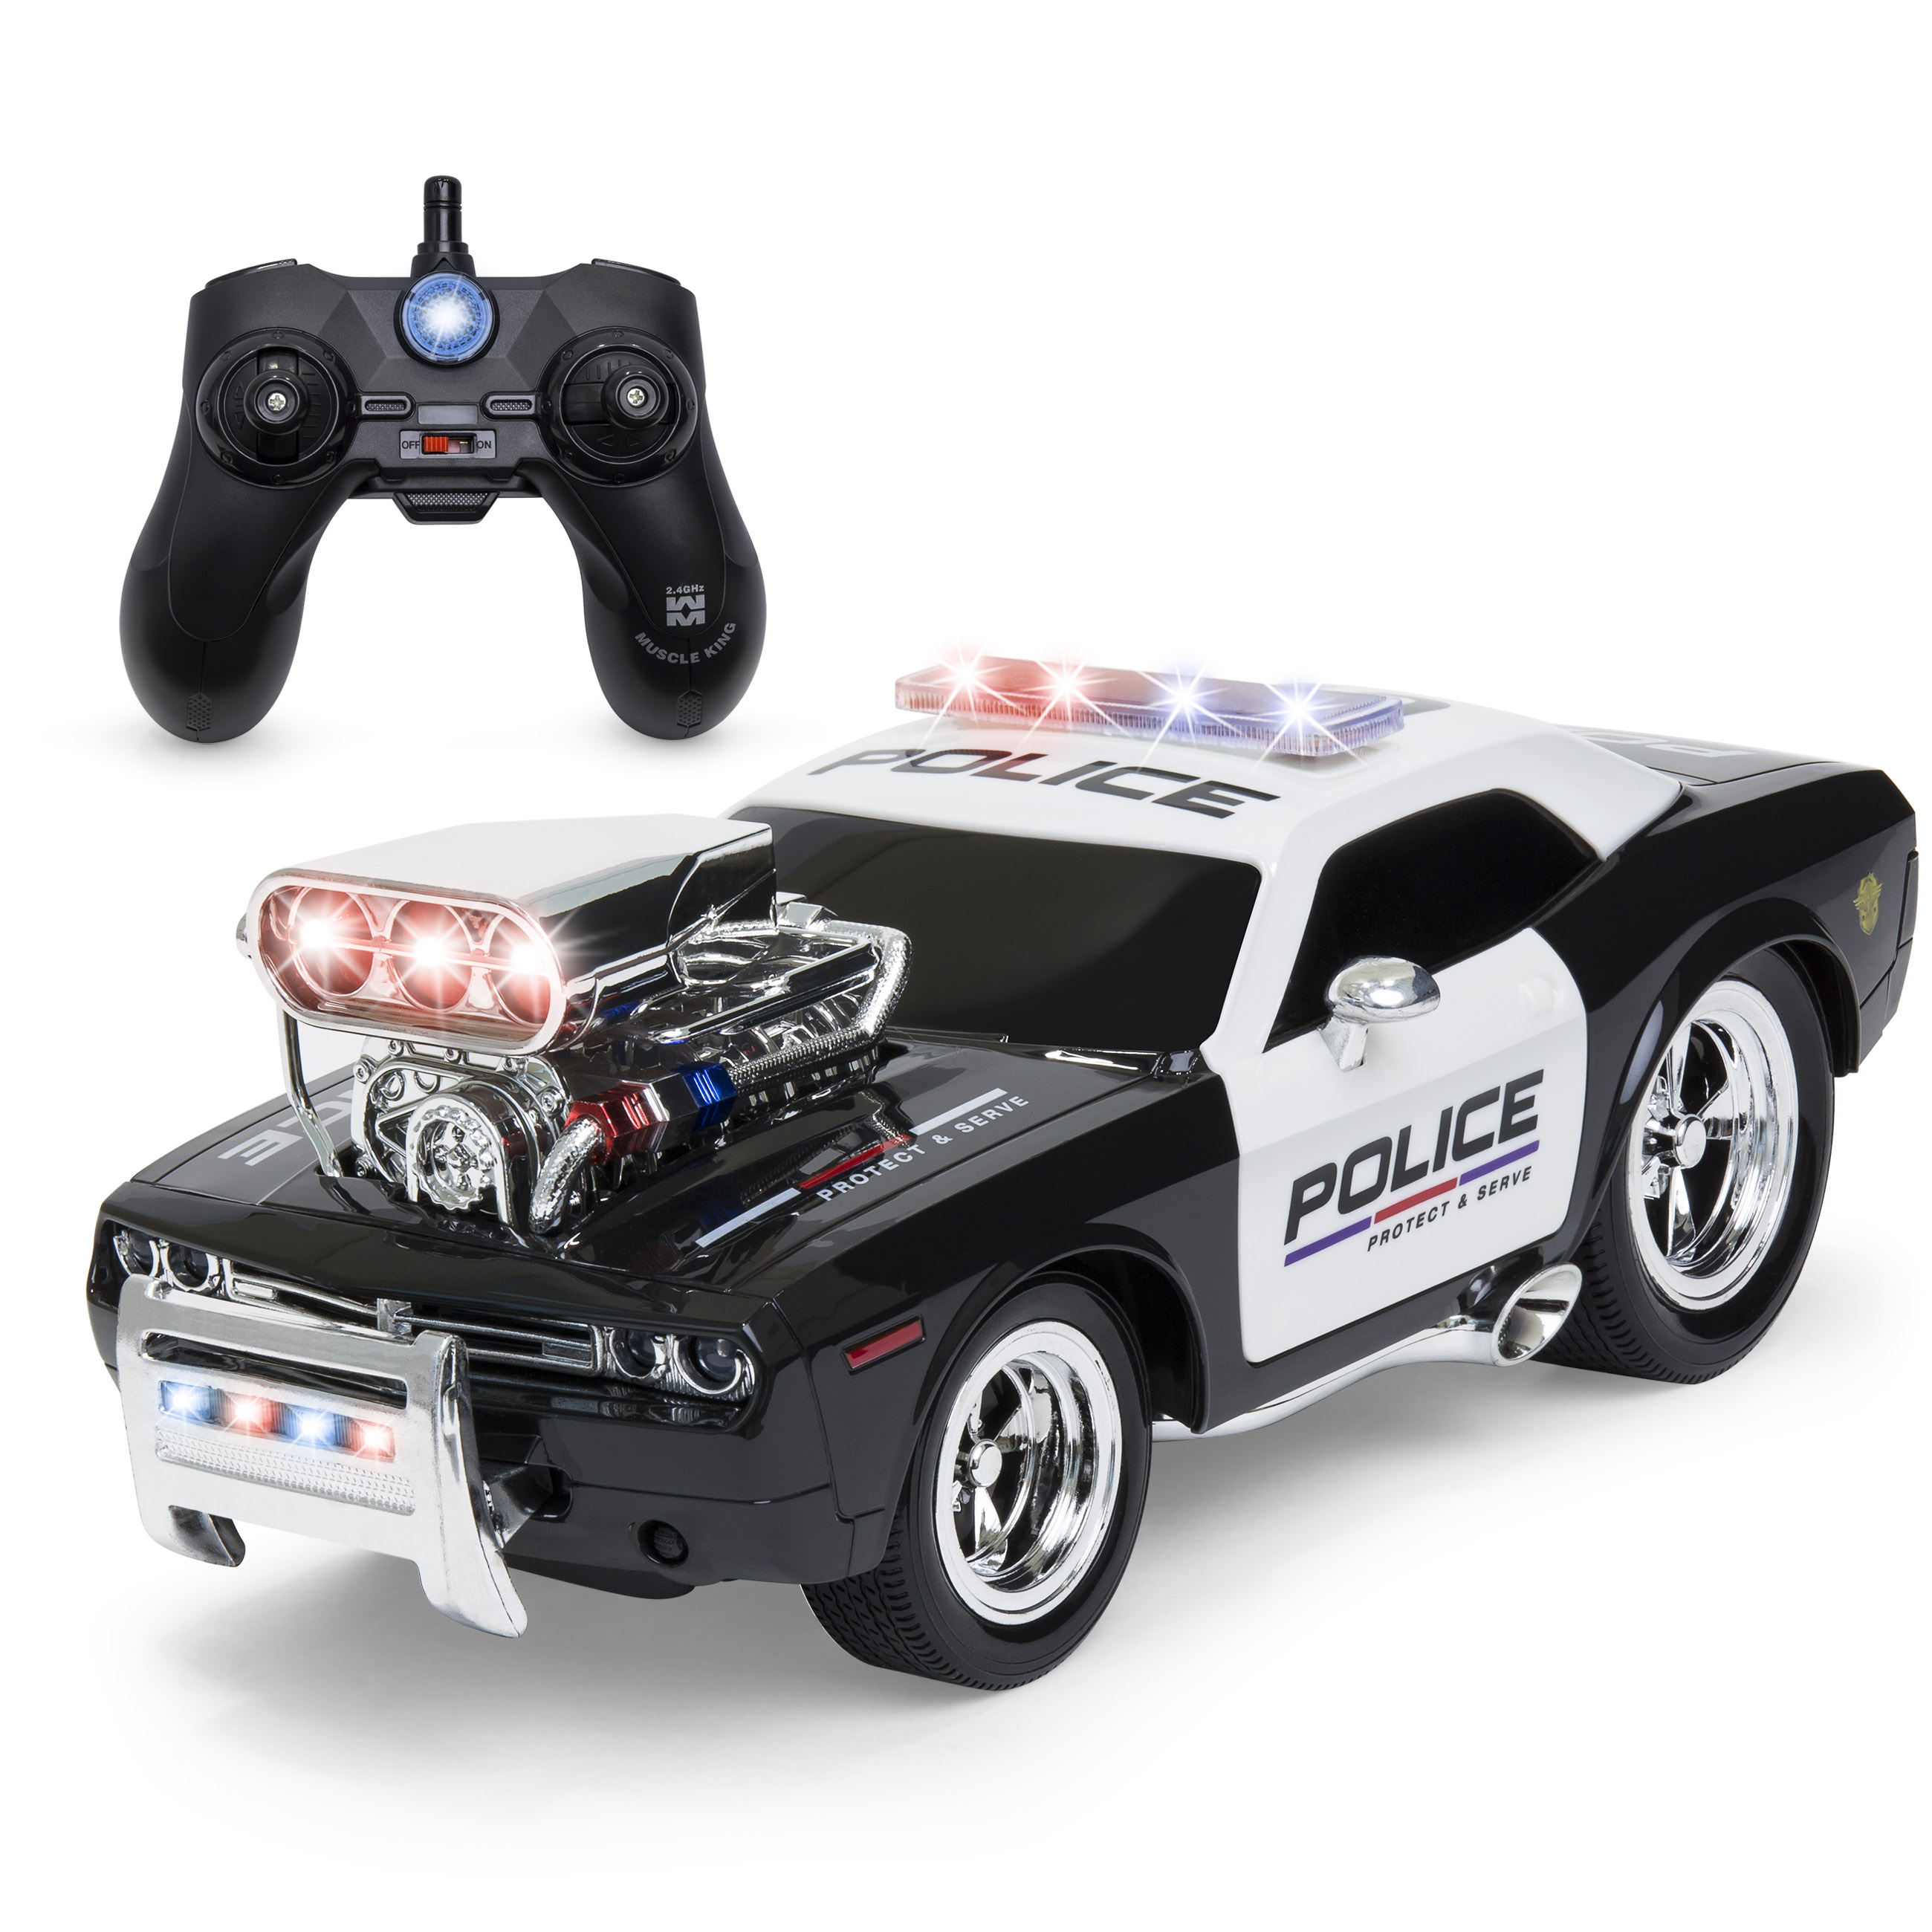 Best Choice Products 2.4GHz Remote Control Police Car w  Lights, Rechargeable Batteries, USB Cable Black by Best Choice Products